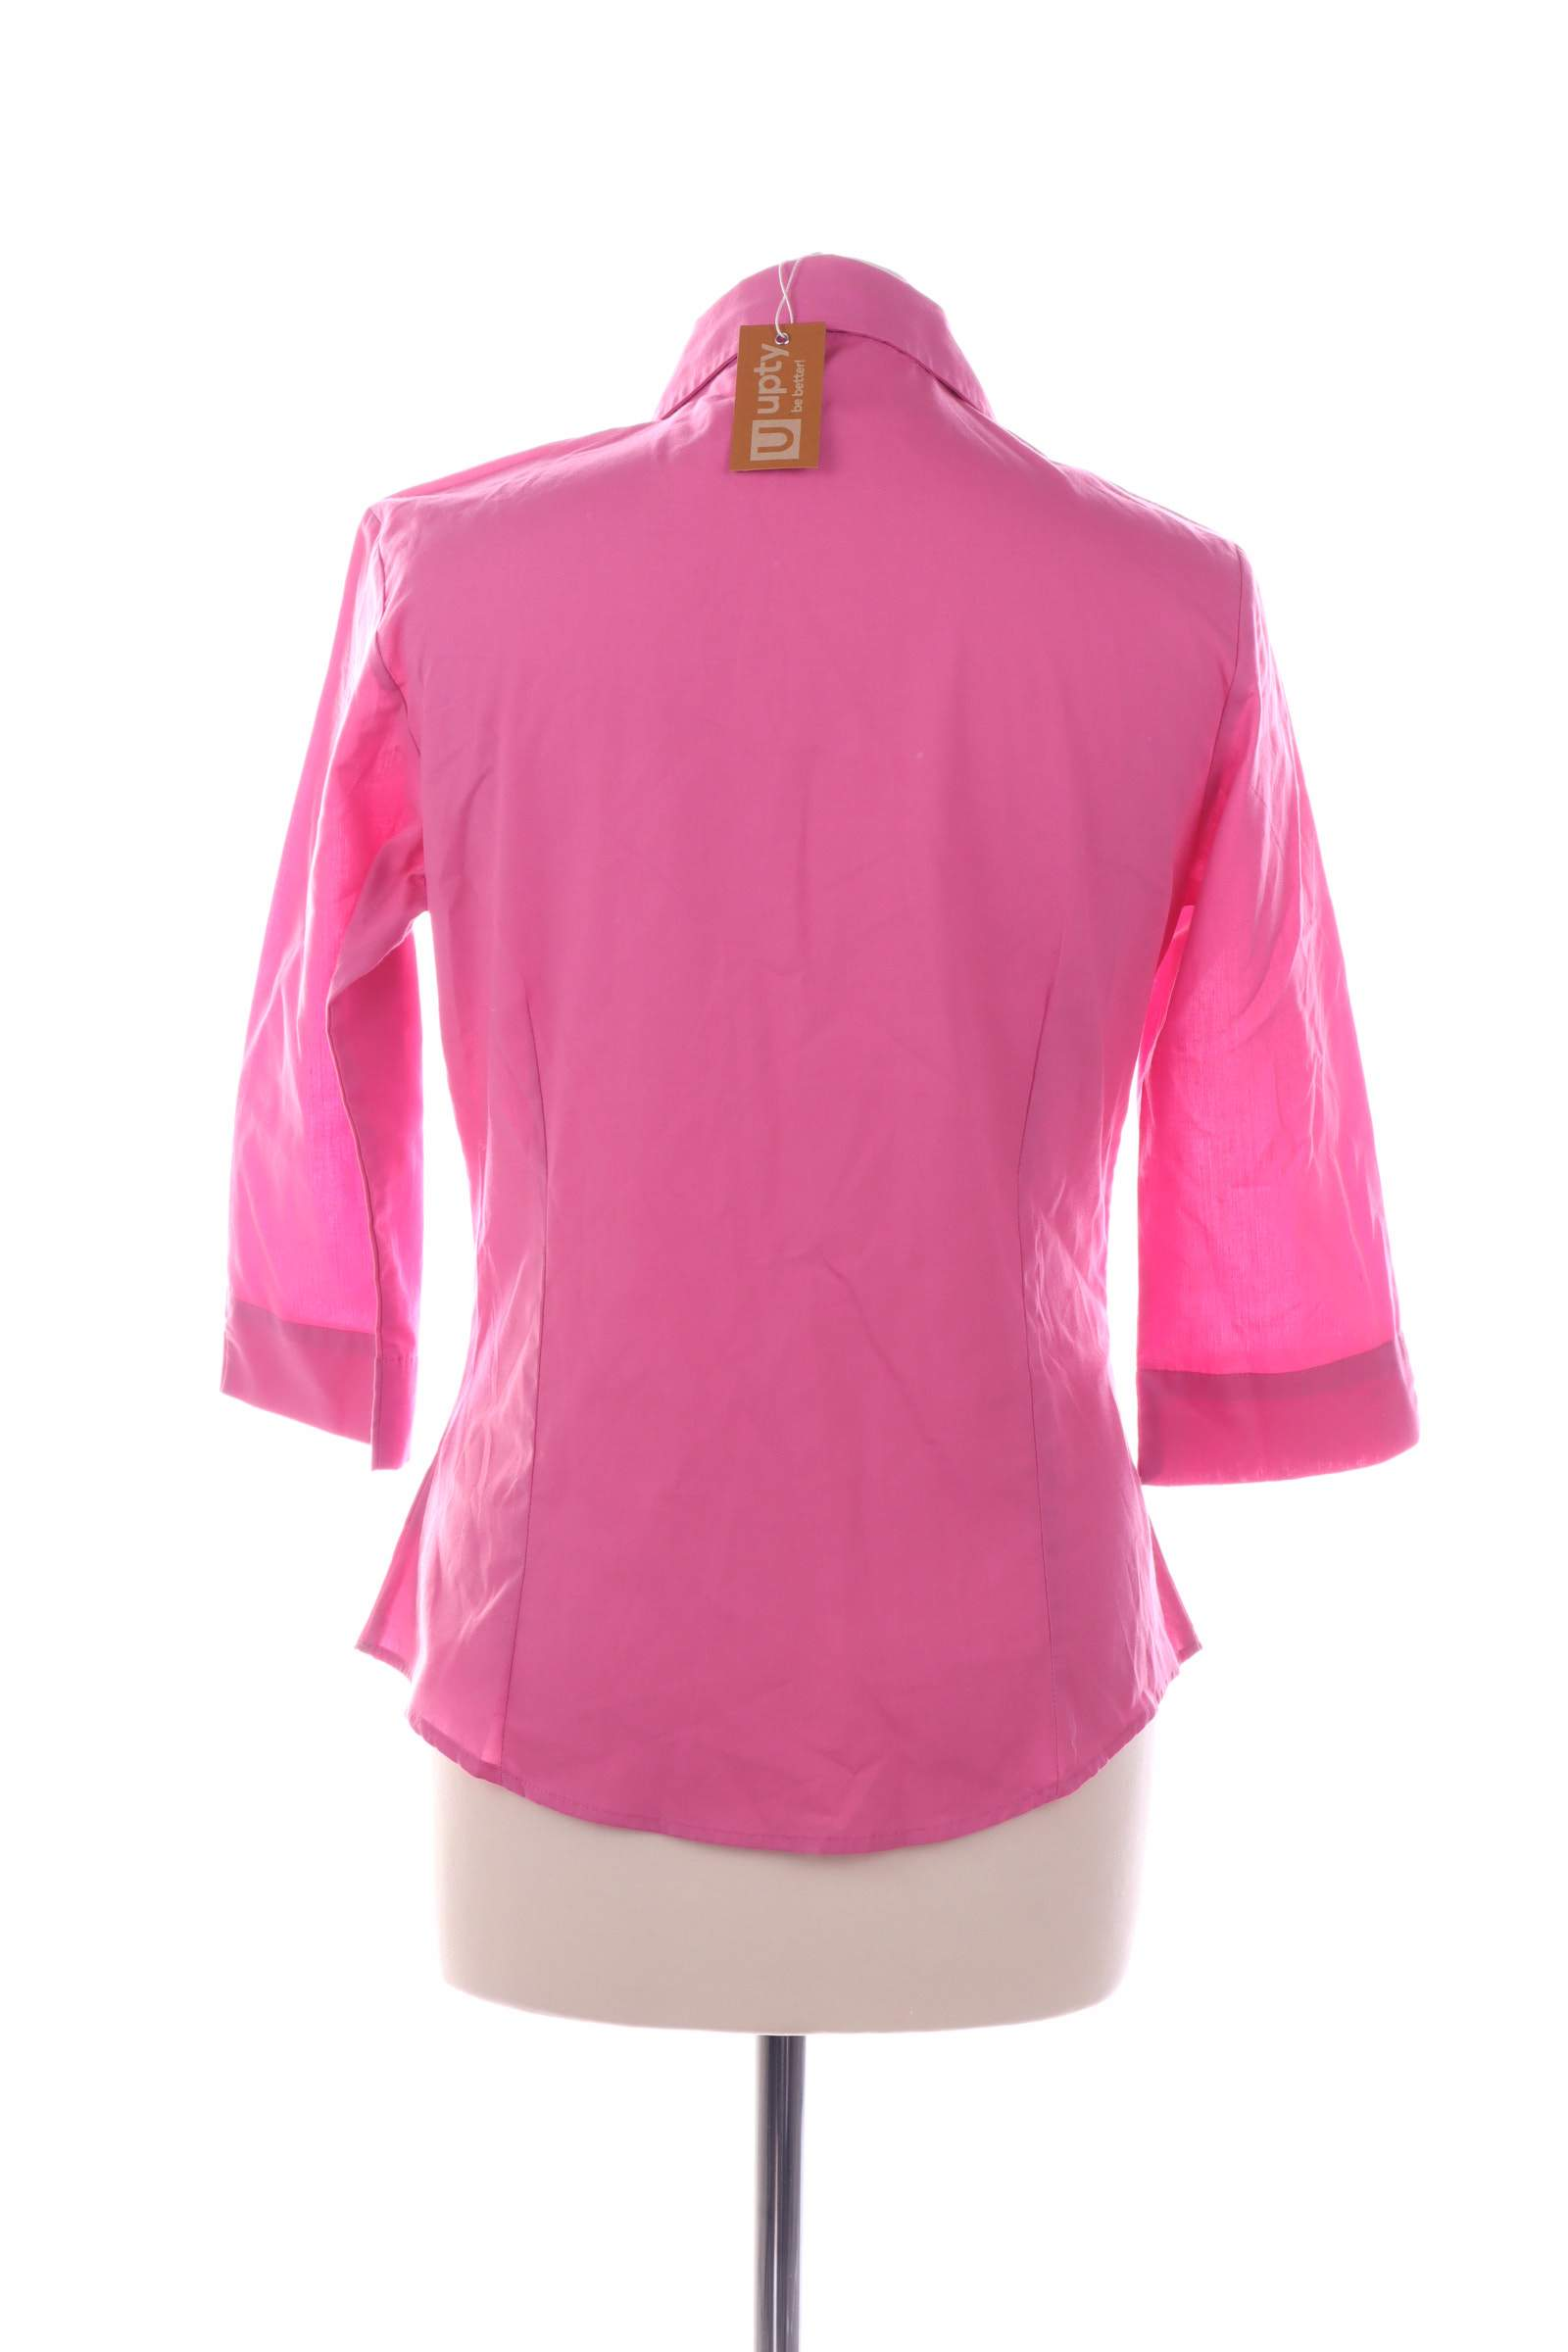 Atmosphere Pink Top - upty.store